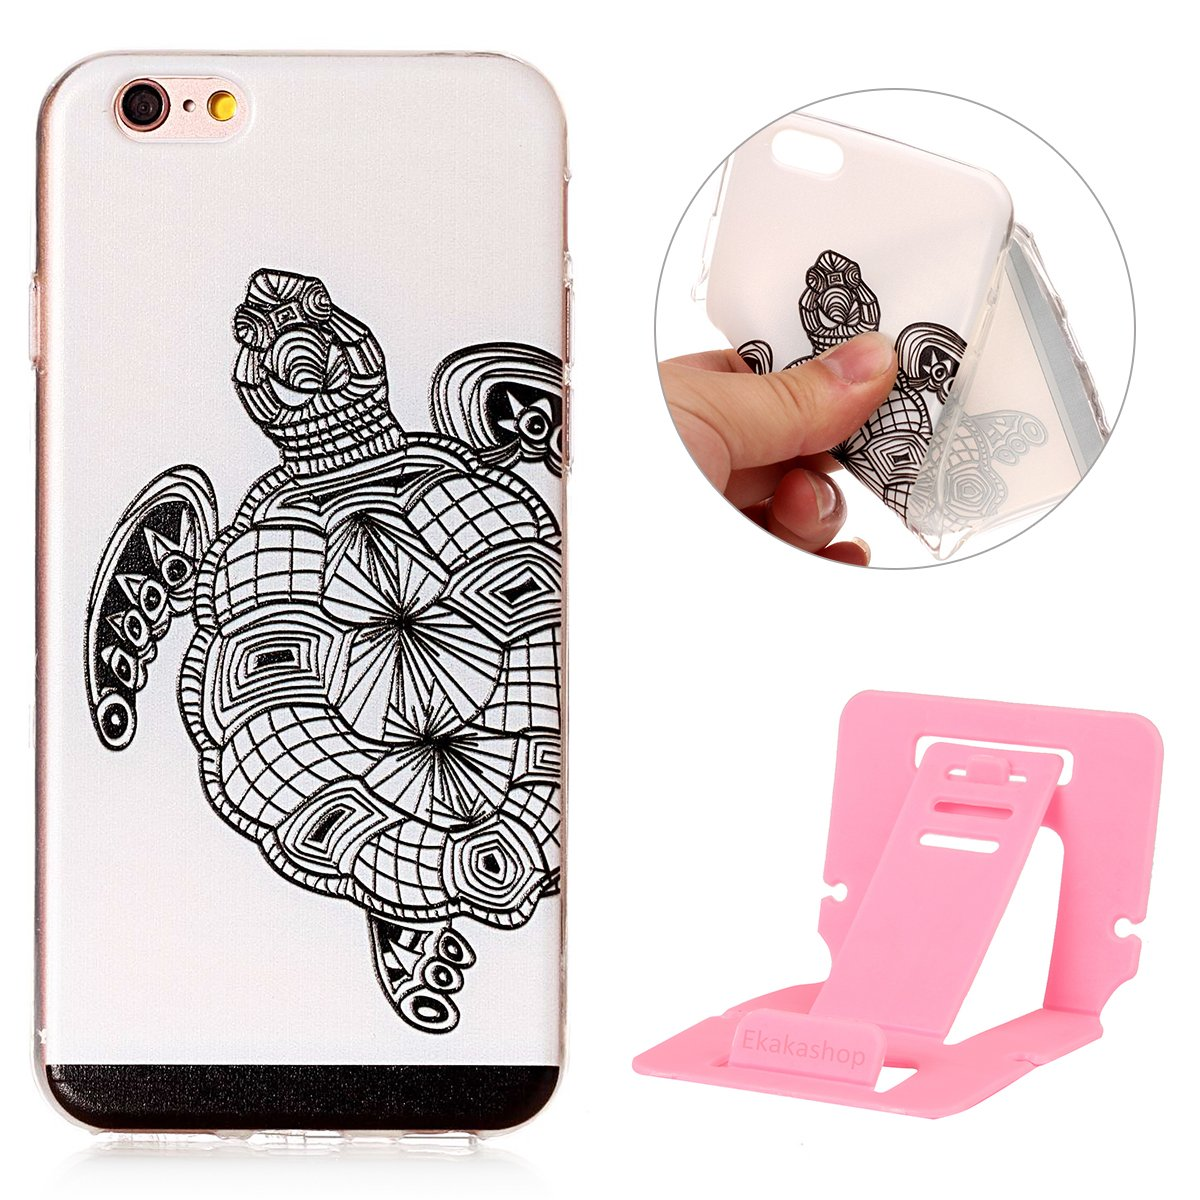 Ekakashop iPhone 6 Plus Funda Silicona,TPU Bumper Case para iPhone 6s Plus, Ultra Fina Delgado Slim Hermoso Patró n Tortuga Transparente Carcasa para Apple iPhone 6 Plus / 6S Plus 5.5 '' kaka037965